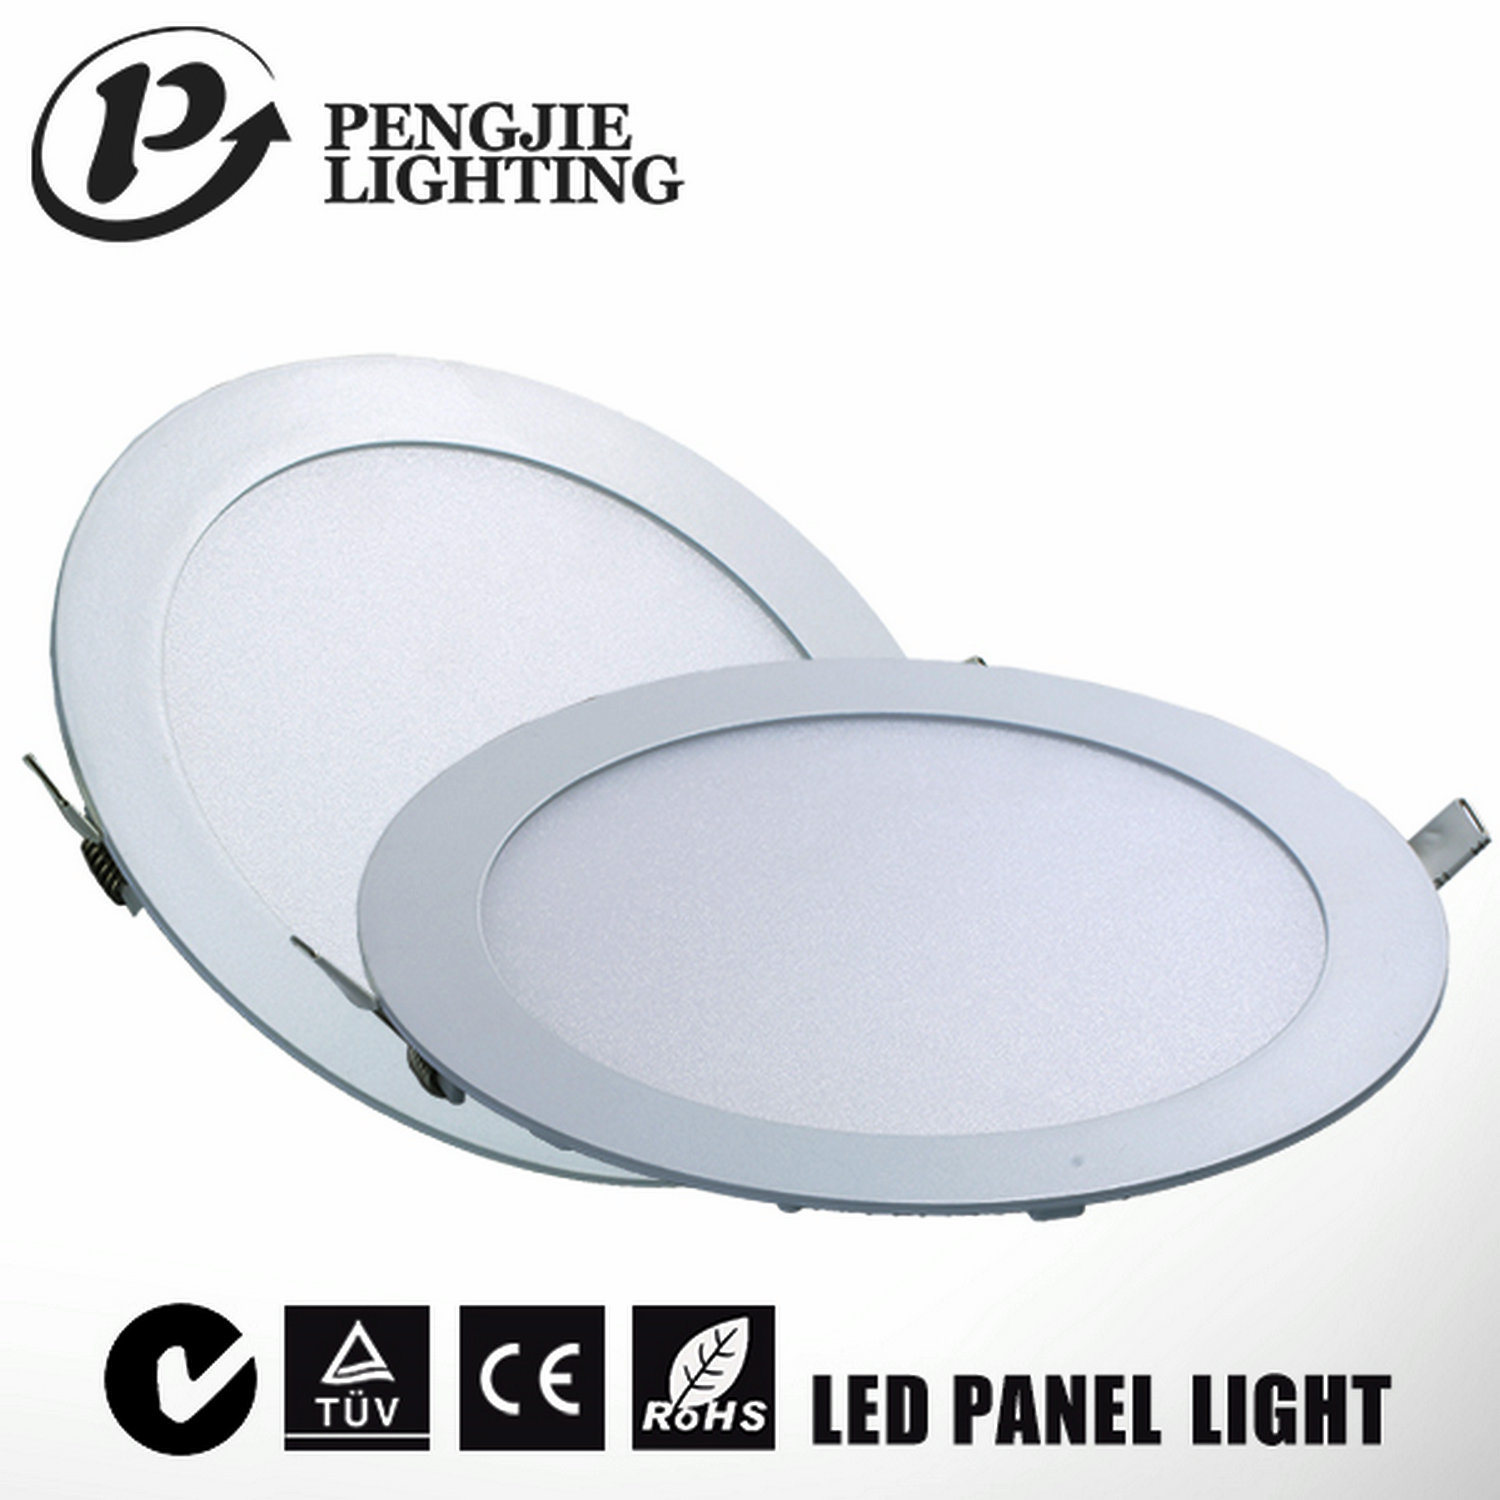 CE/RoHS 3-24W Round Ceiling LED Panel Light for Indoor (PJ4030)